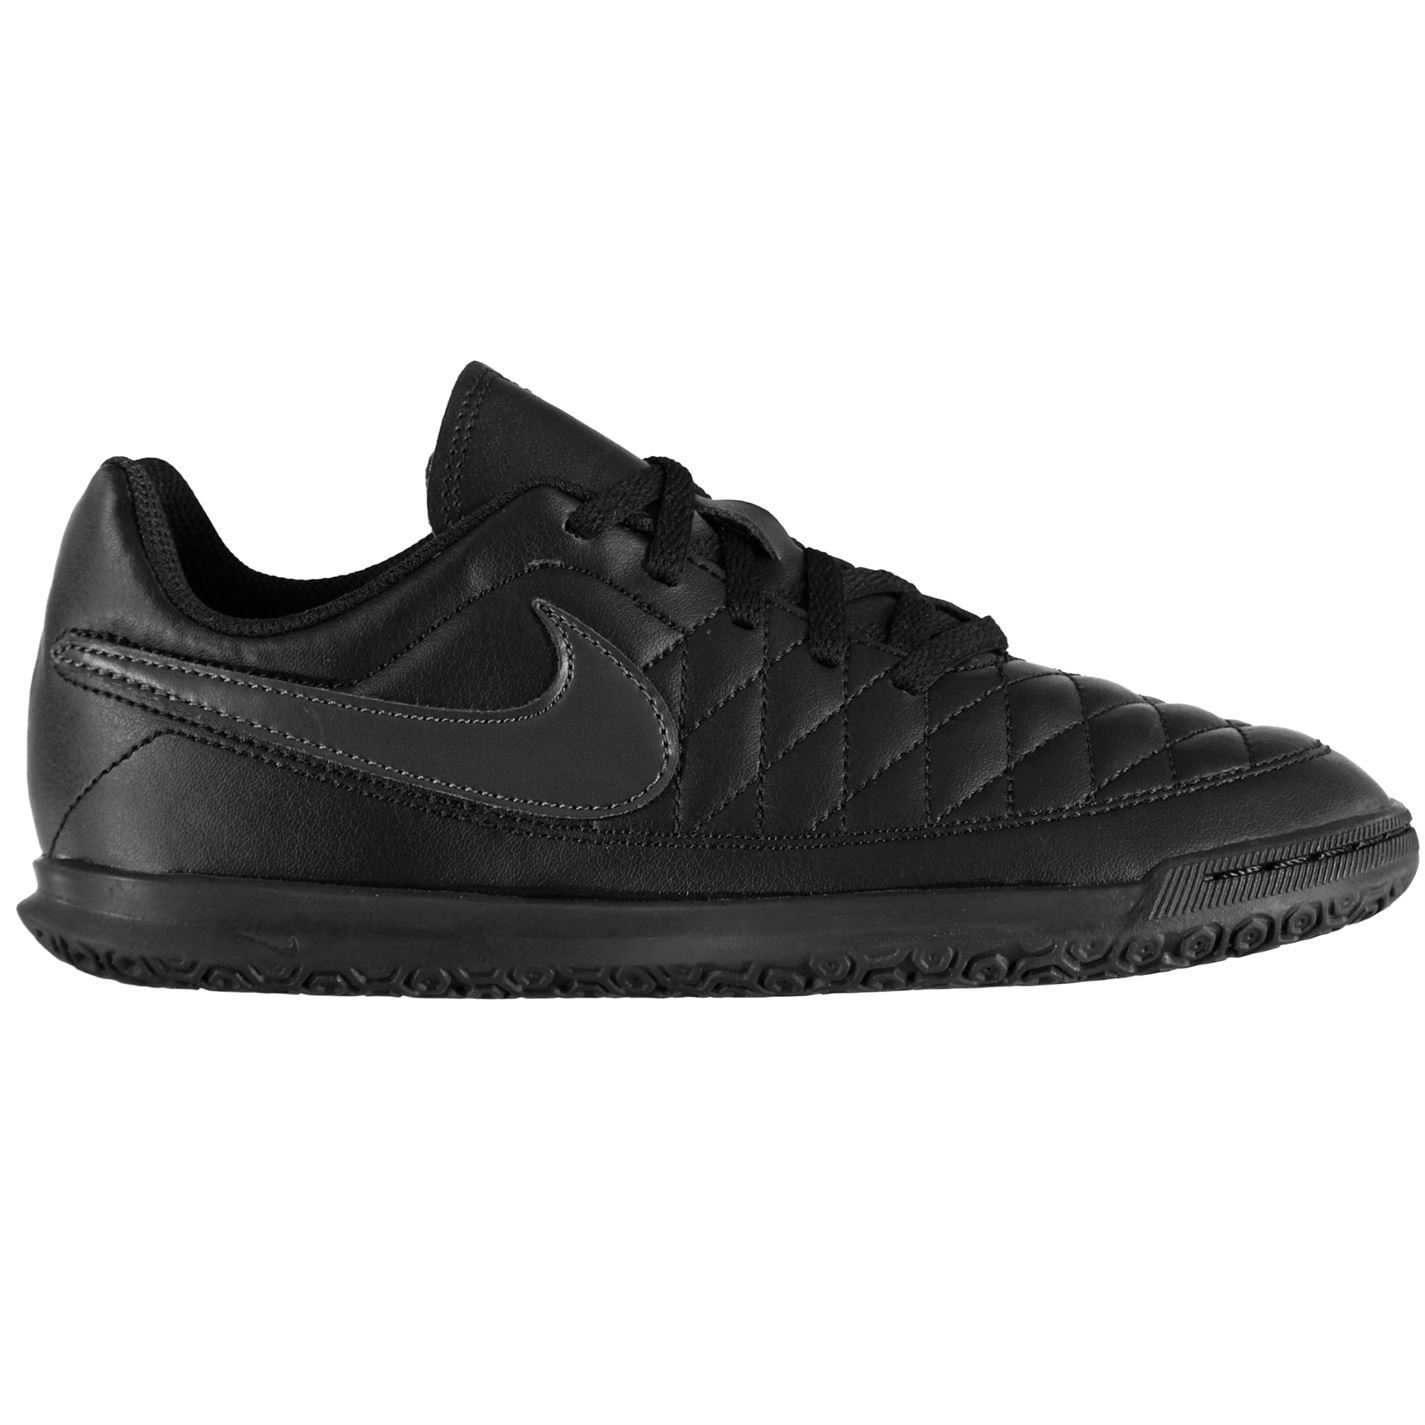 Nike-majestry-Indoor-Court-Football-formateurs-juniors-Football-Baskets-Chaussures miniature 4